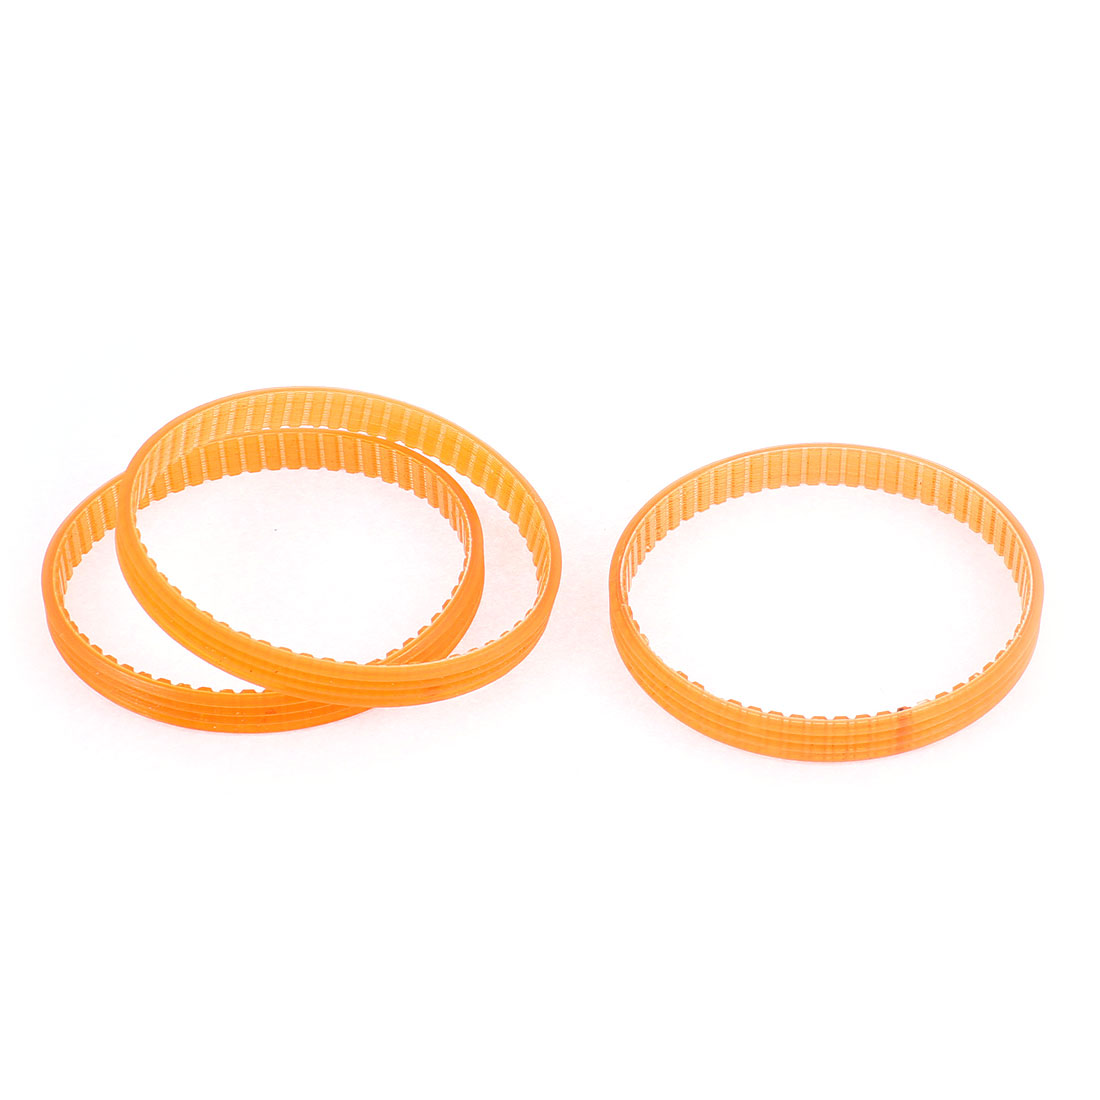 3 Pcs 60 Teeth Rubber PU Double Sided Multi Wedge Timing Belt Orange